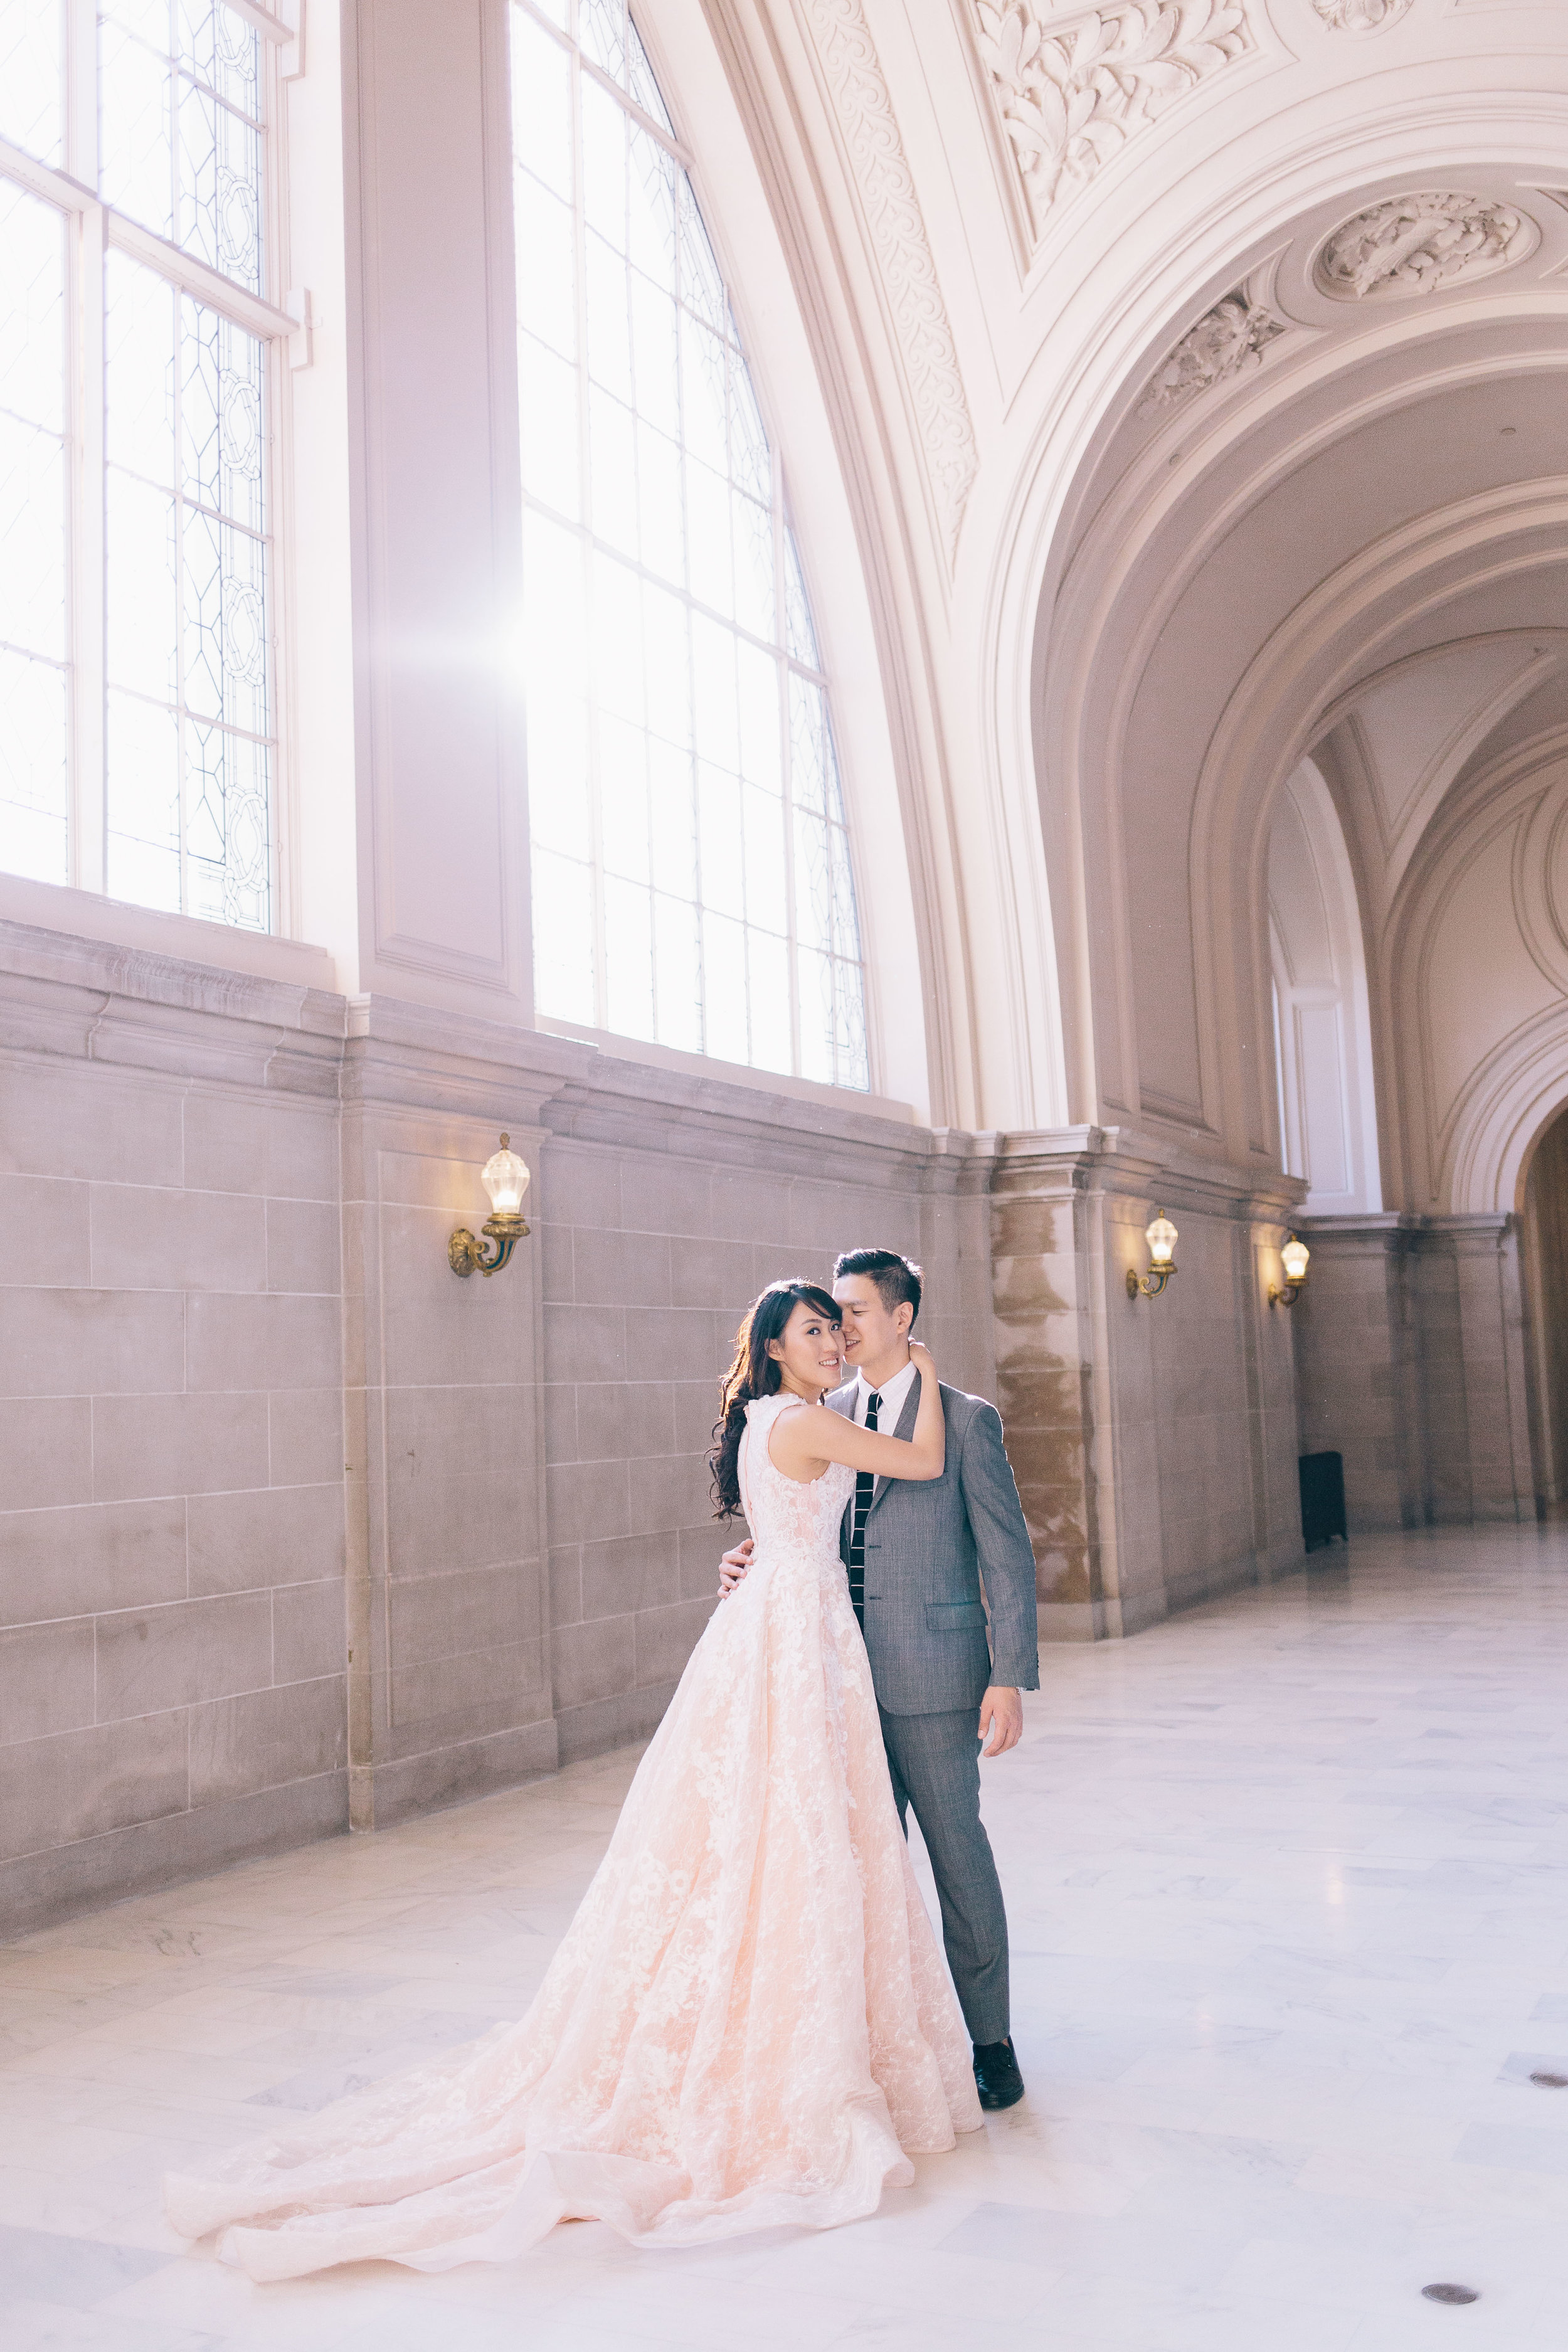 San Francisco City Hall Pre-Wedding Photos by JBJ Pictures - SF City Hall Wedding and Engagement Photos (4).jpg